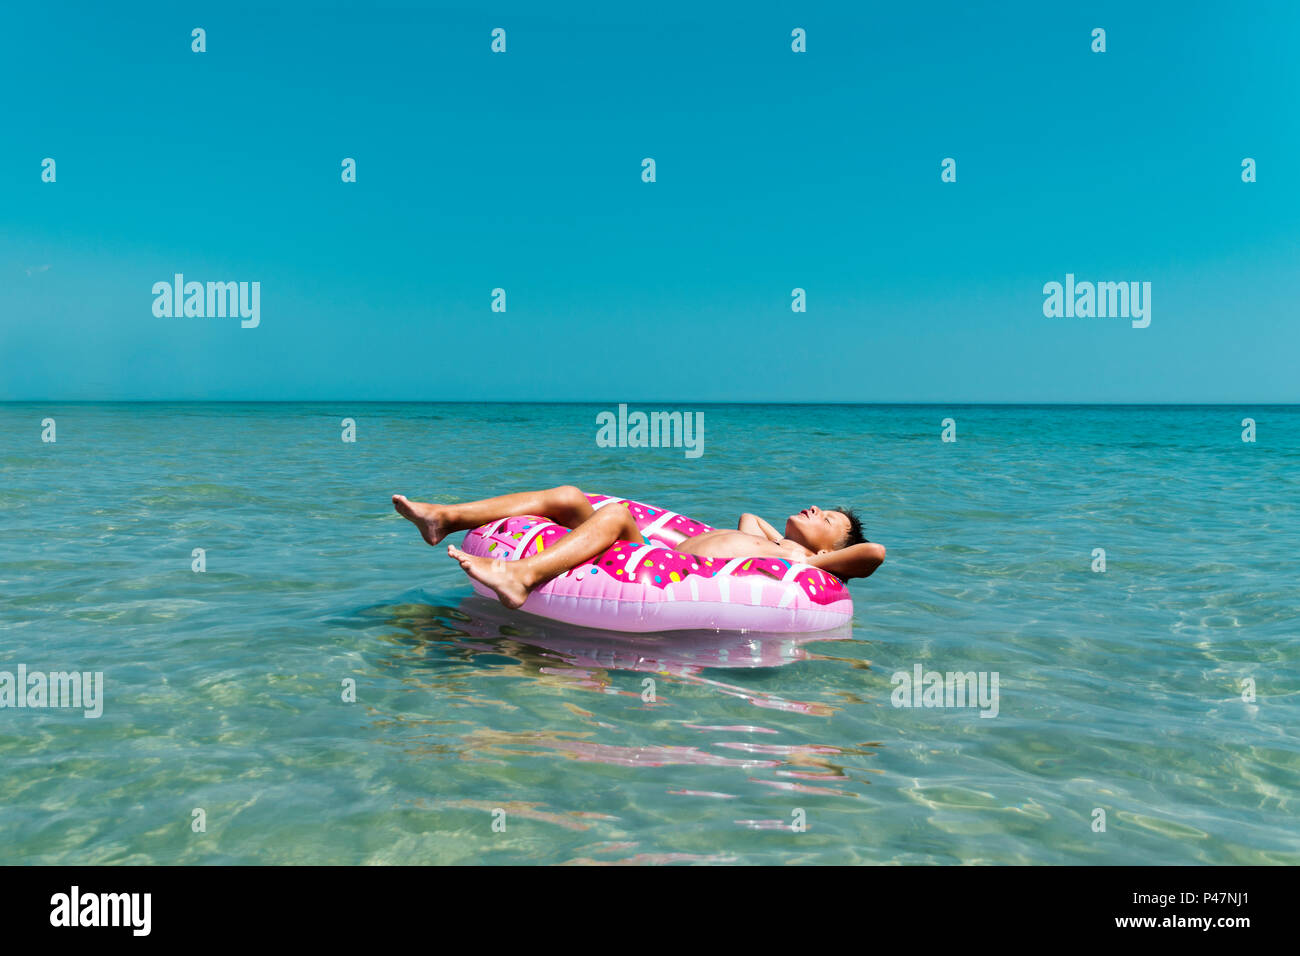 Relaxing boy in inflatable ring in sea. - Stock Image